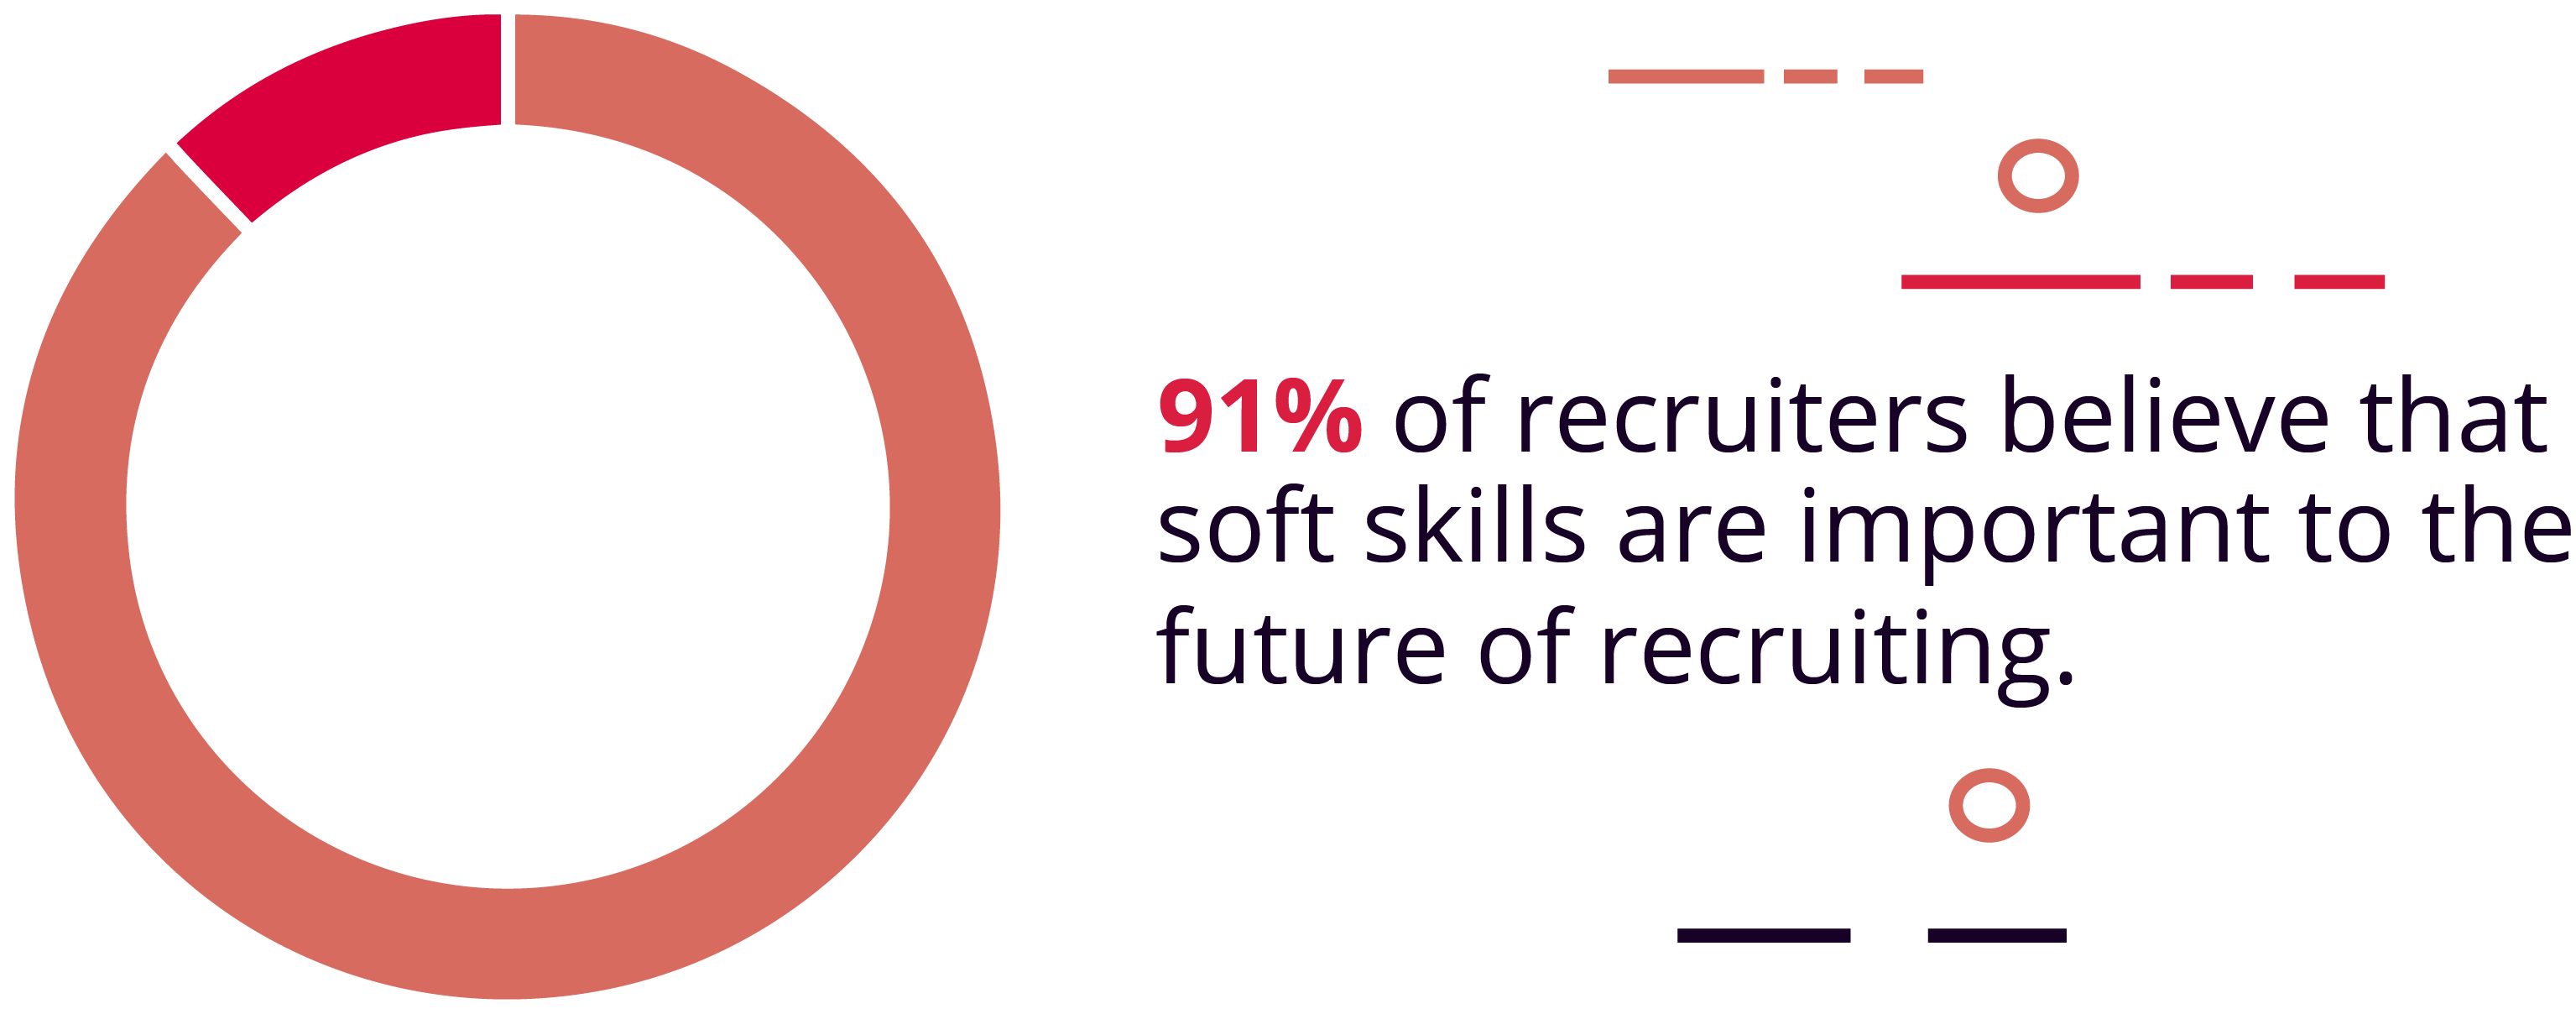 91% of Recruiters Believe Soft Skills Are Important to the Future of Recruiting